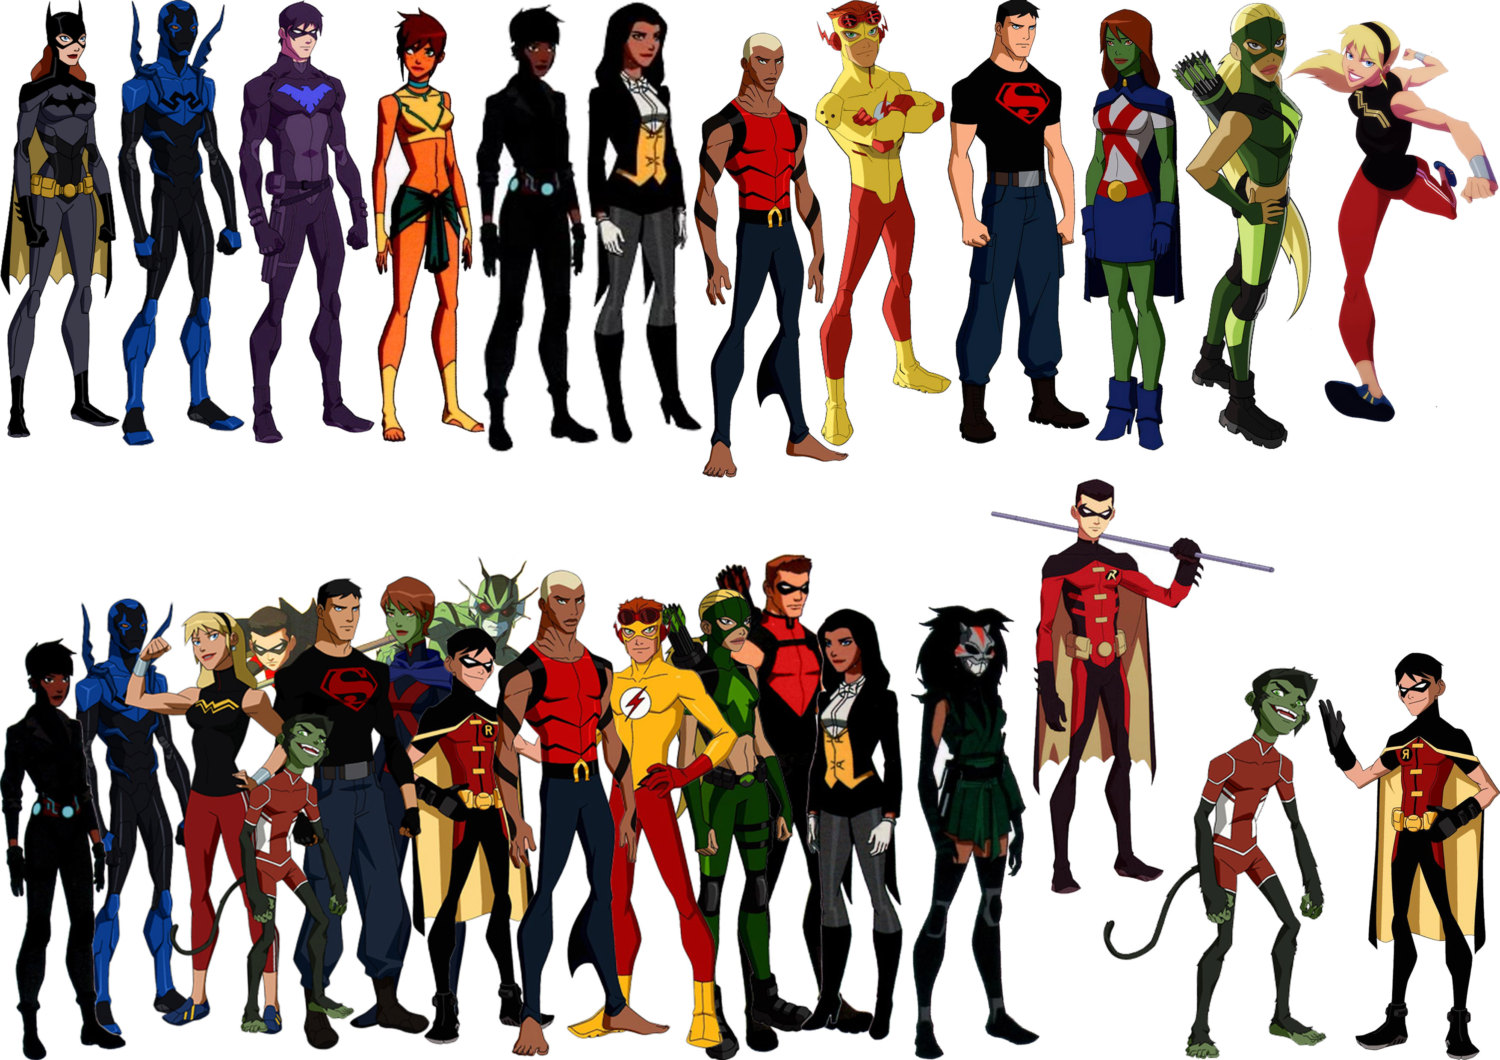 Young justice2 - Young Justice Photo (36986042) - Fanpop